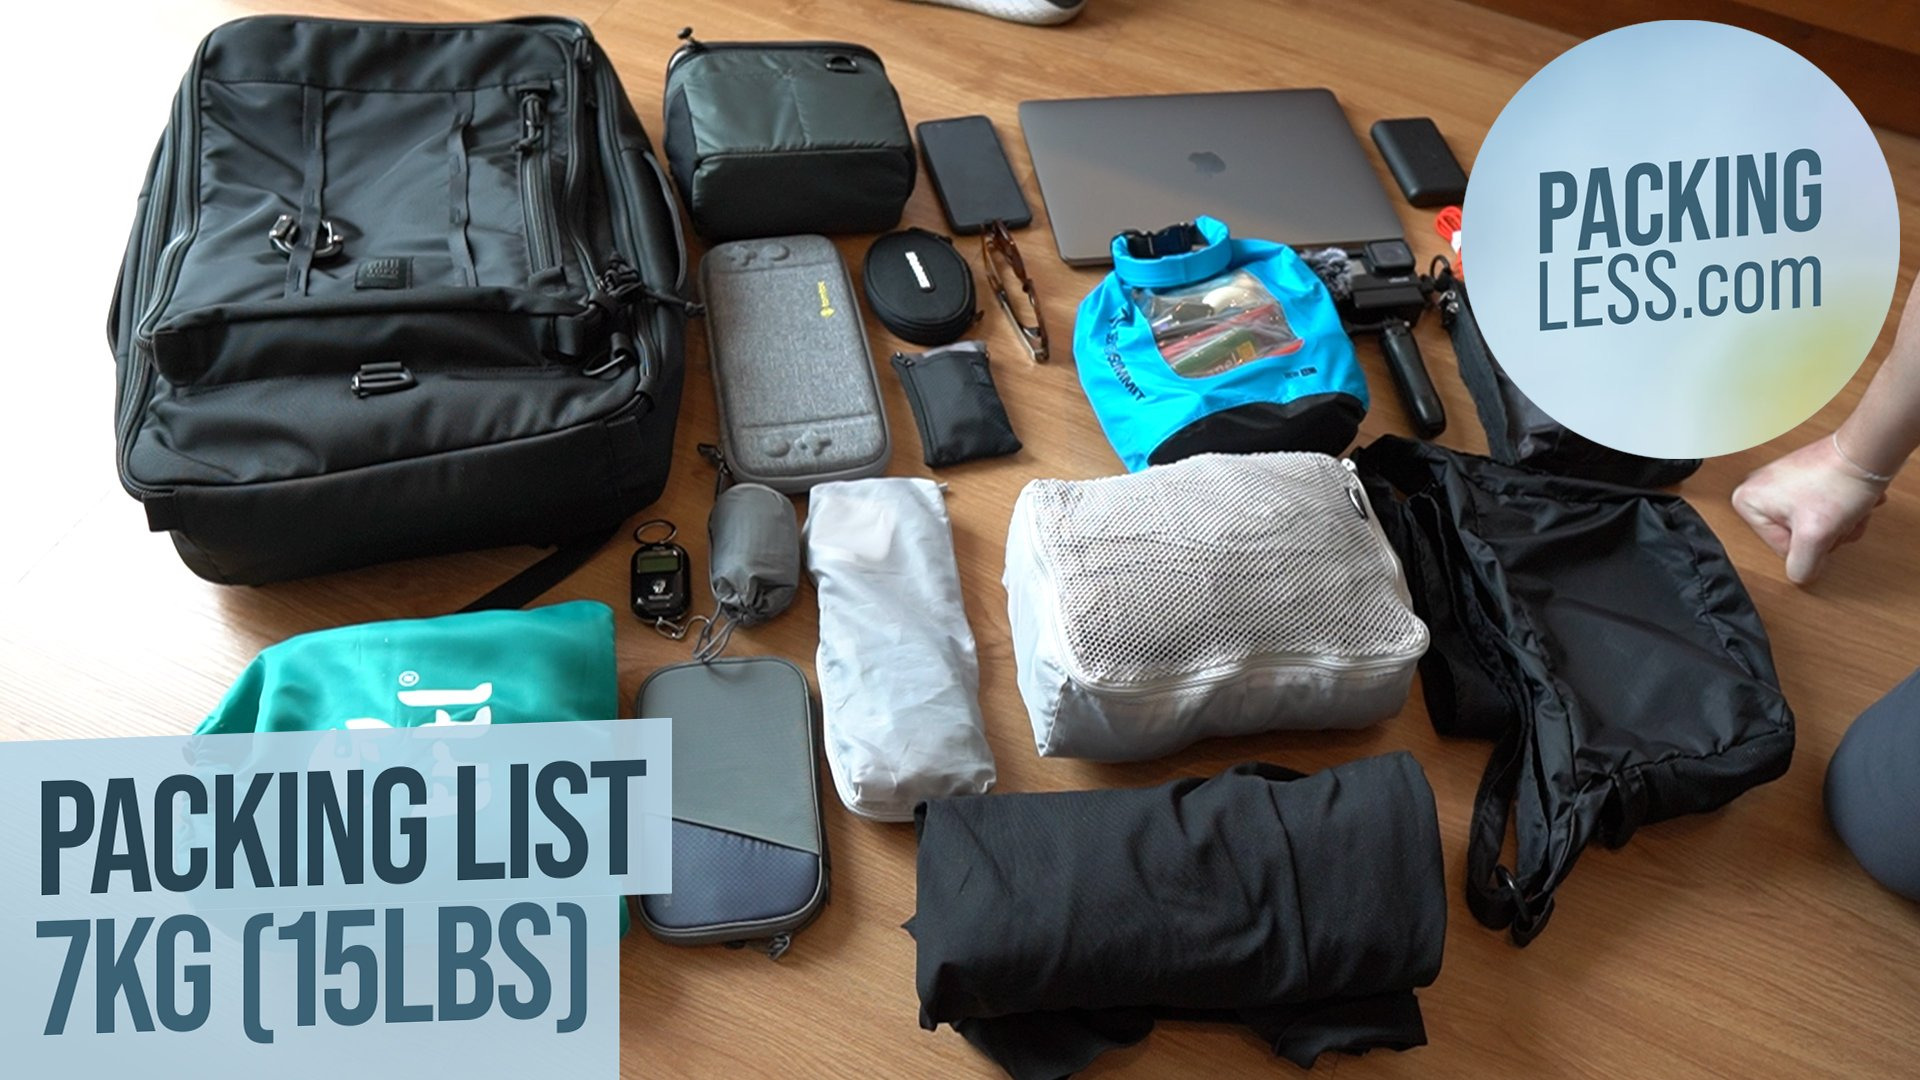 [August 2019] Travelling Light 7kg (15lbs) Backpack Tour Packing List